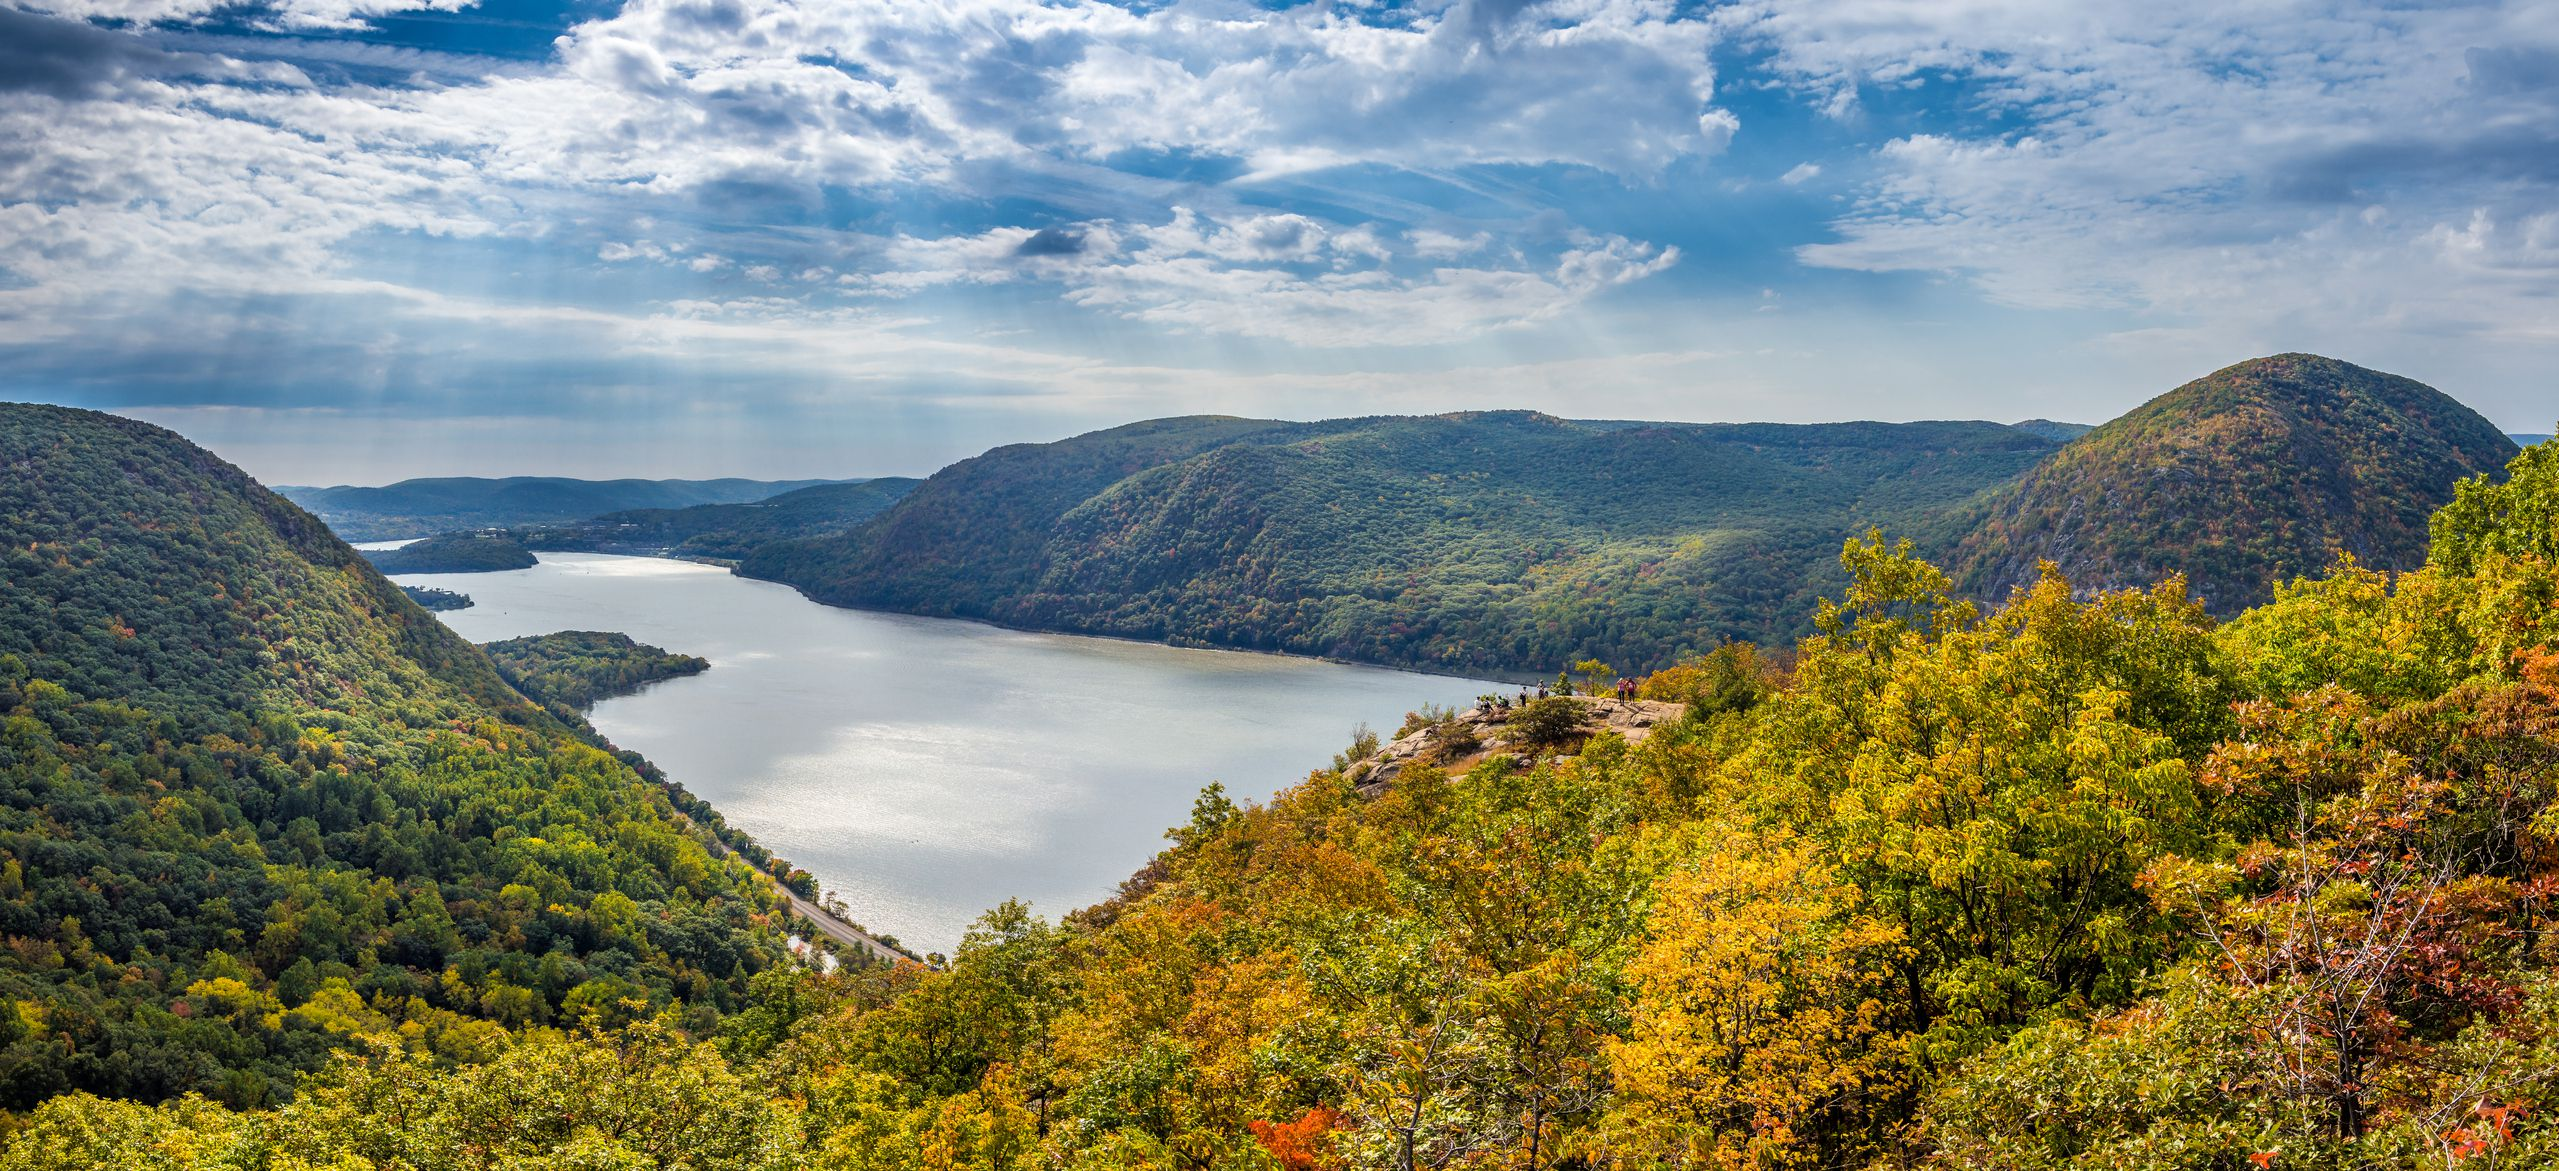 The Best Hikes in the Catskills